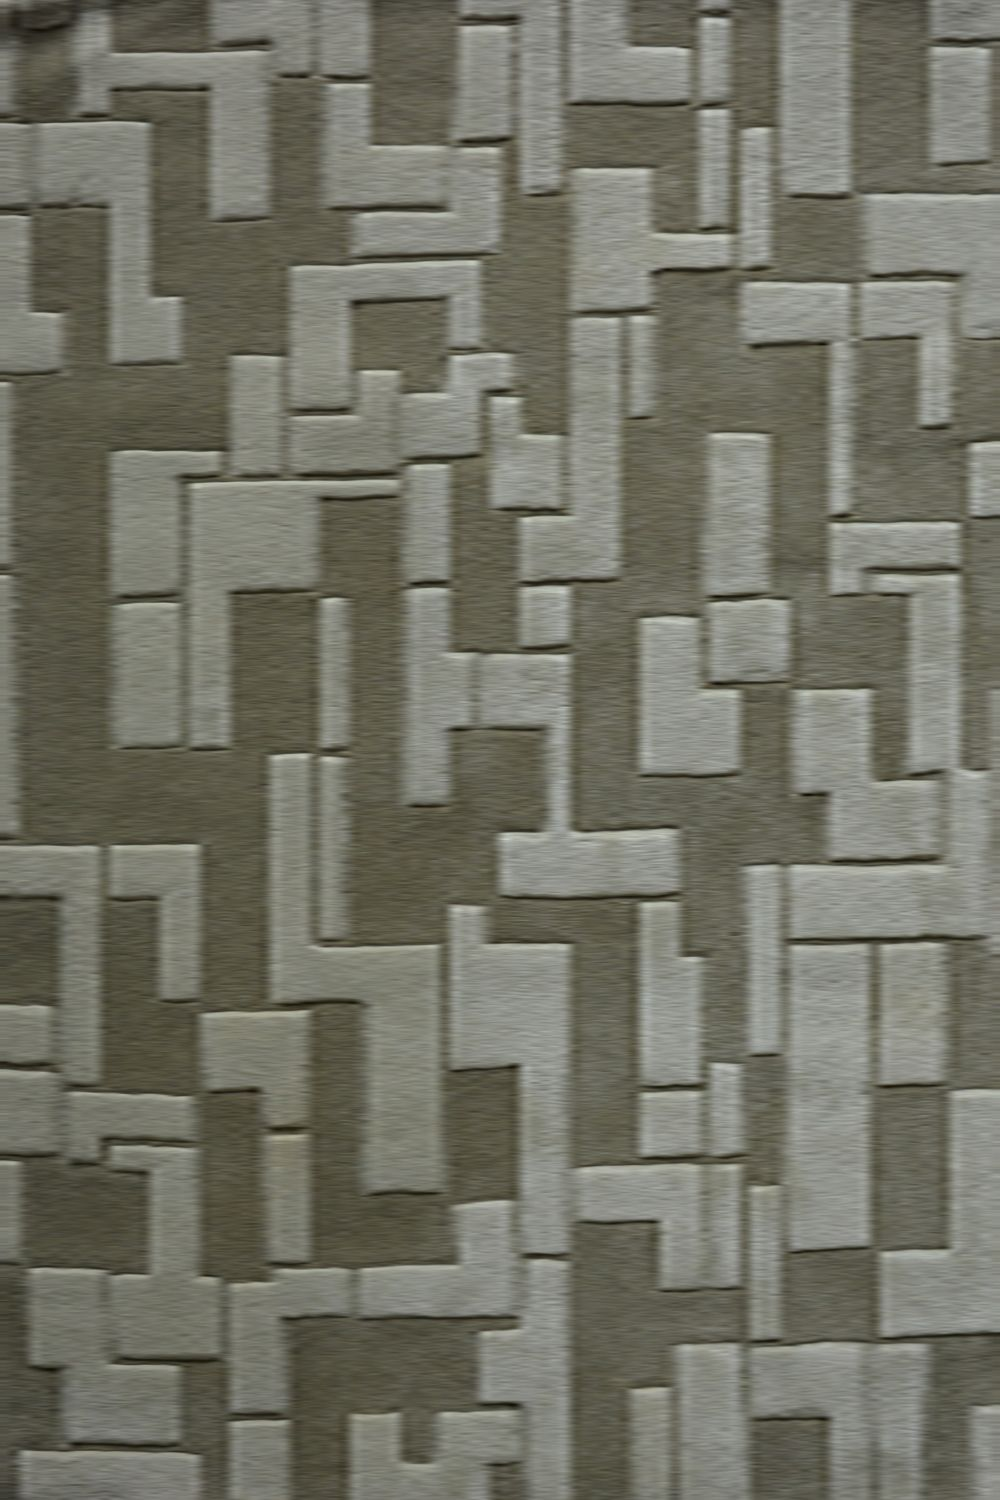 Hand Tufted Carpet 10 Mm Thick 4 6 6 5 Ft Rs 2963 Rugs On Carpet Rug Store Carpets Online